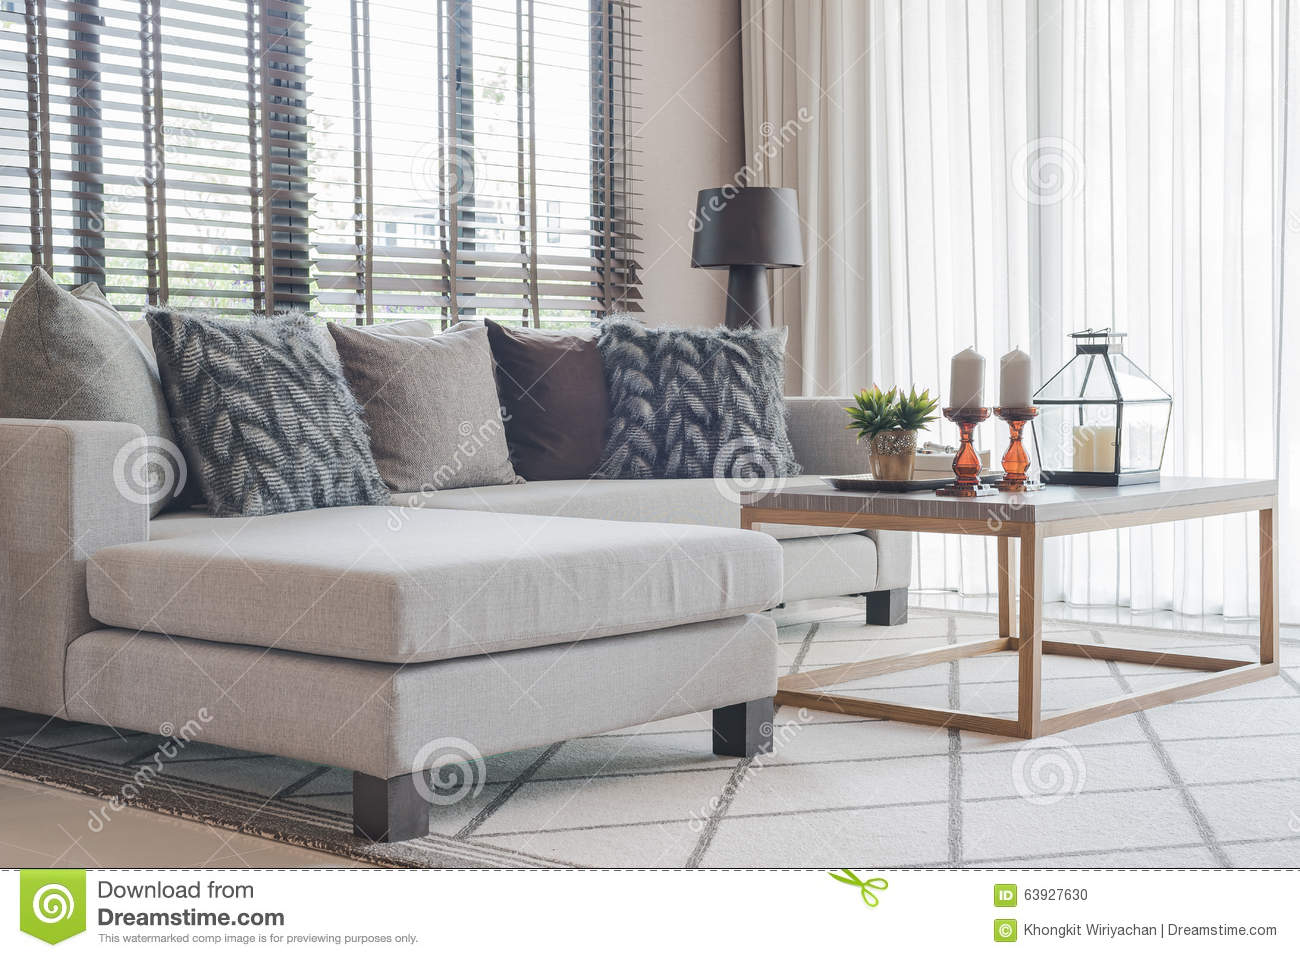 living rooms with grey sofas. Modern living room with modern grey sofa and wooden table Stock Photo Contemporary Living Room With Grey Sofa  Image